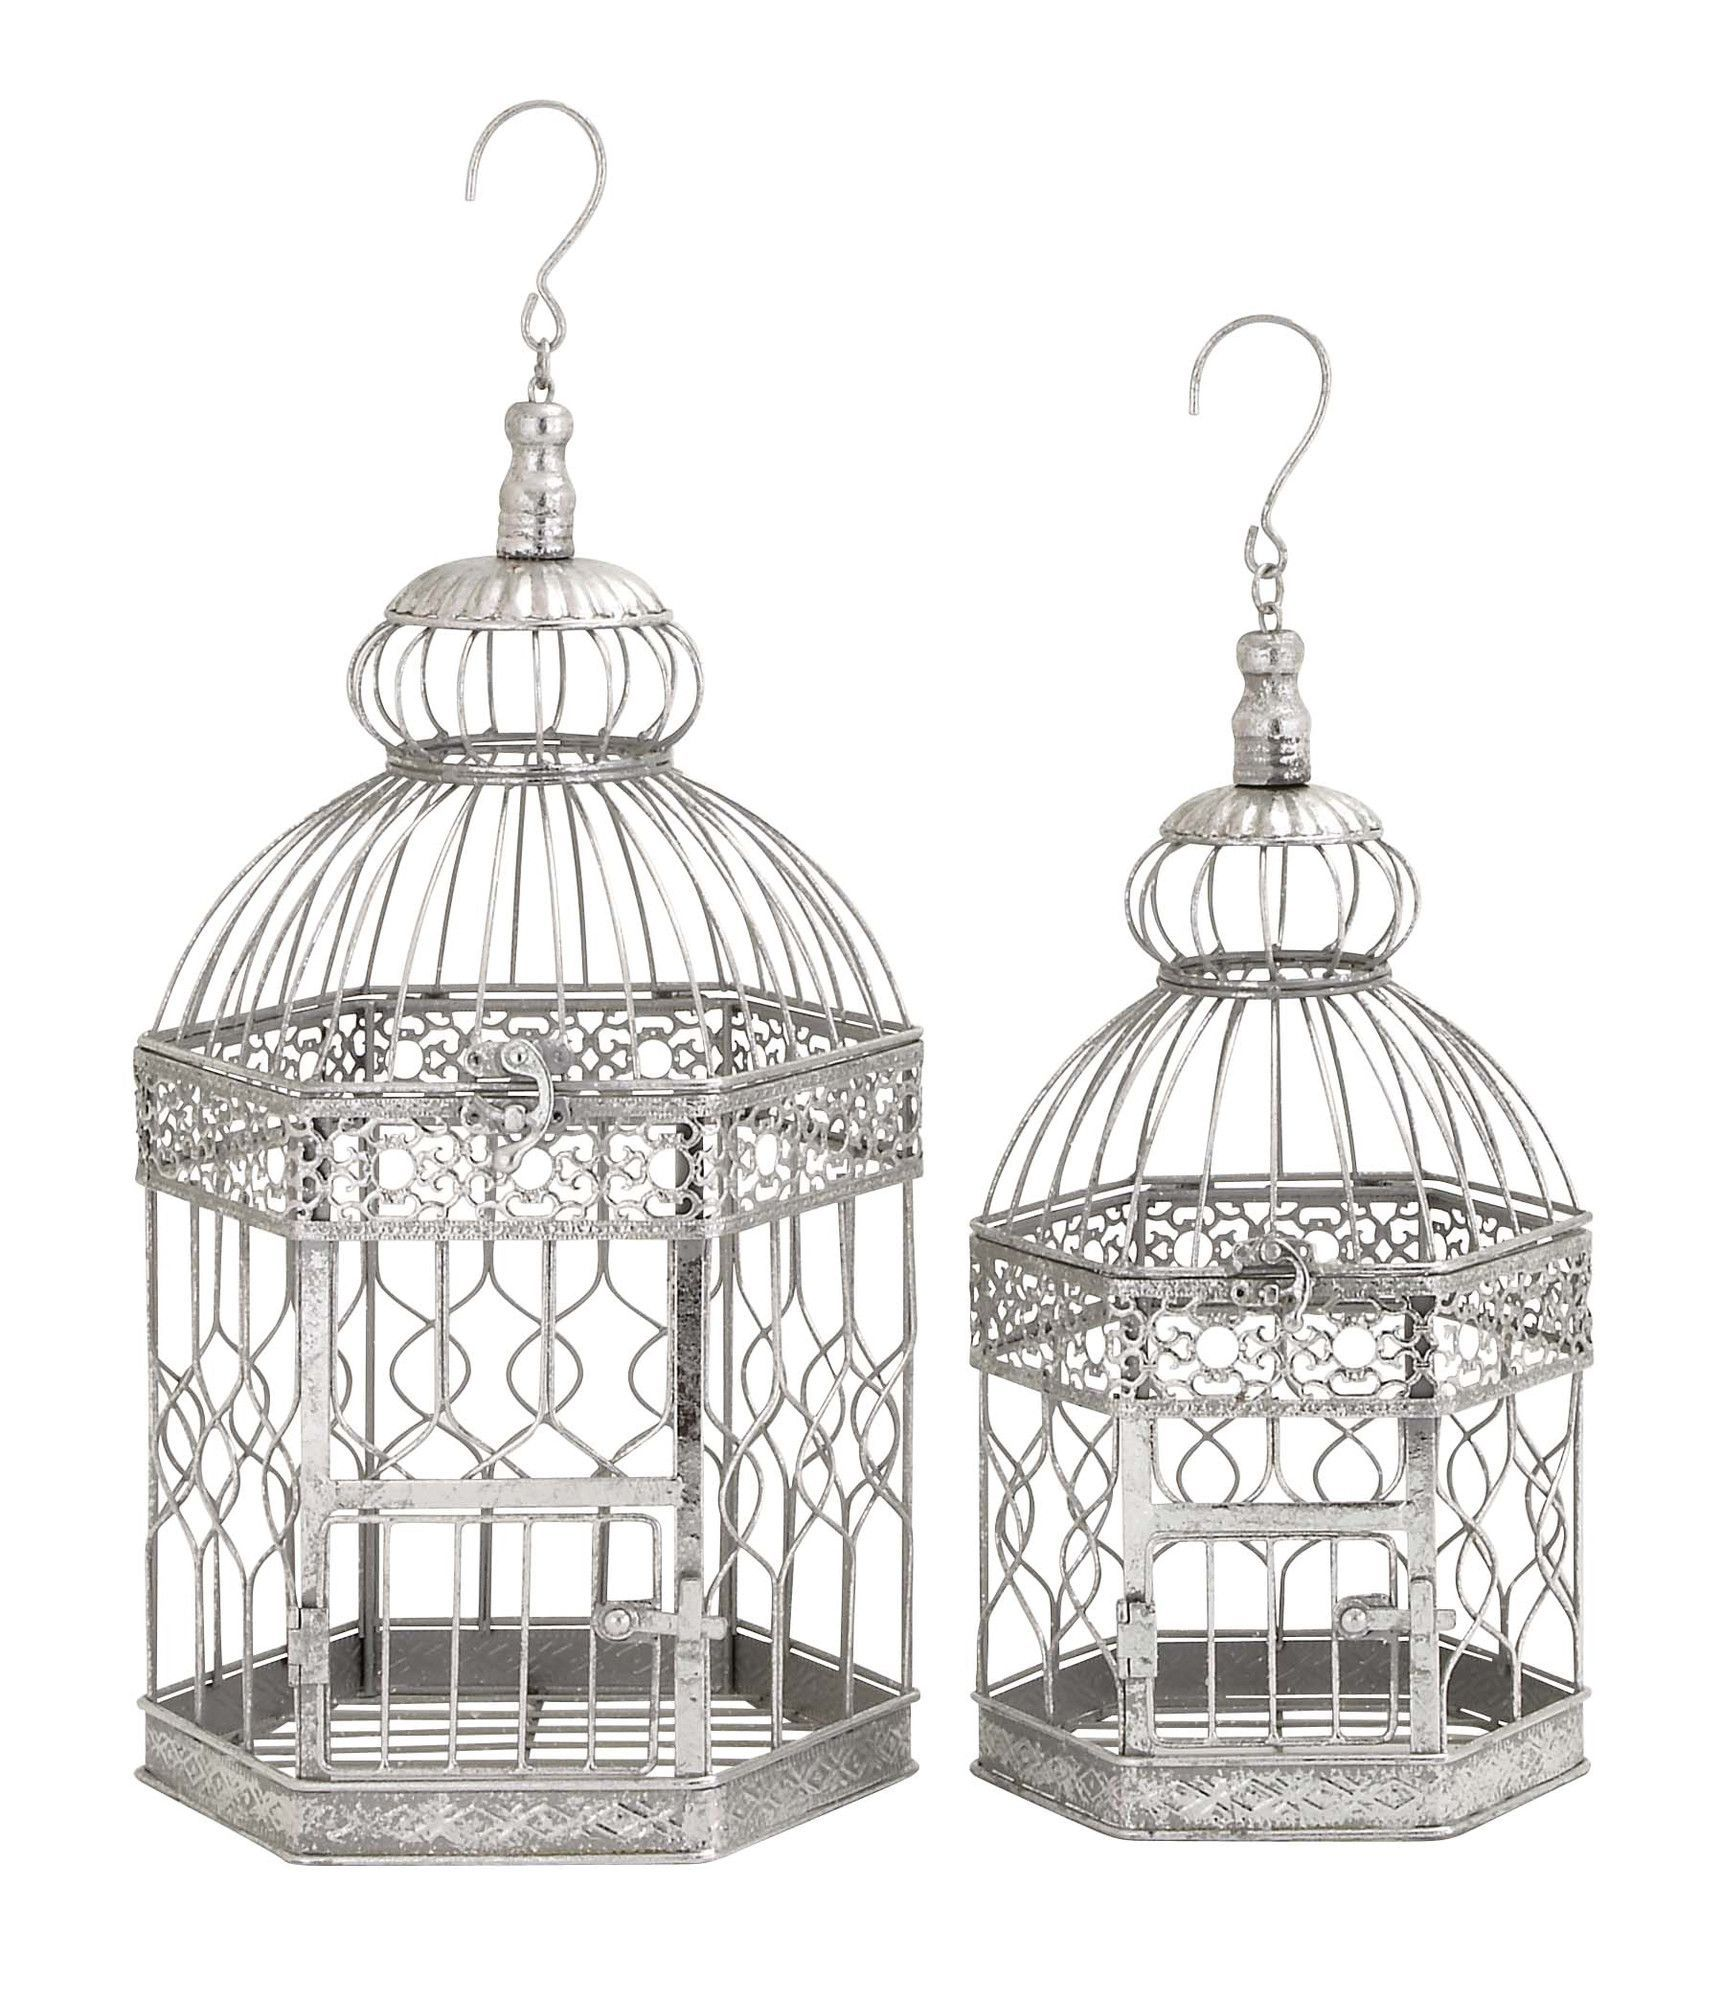 Decorative 2 Piece Hexagonal Bird Cage Set